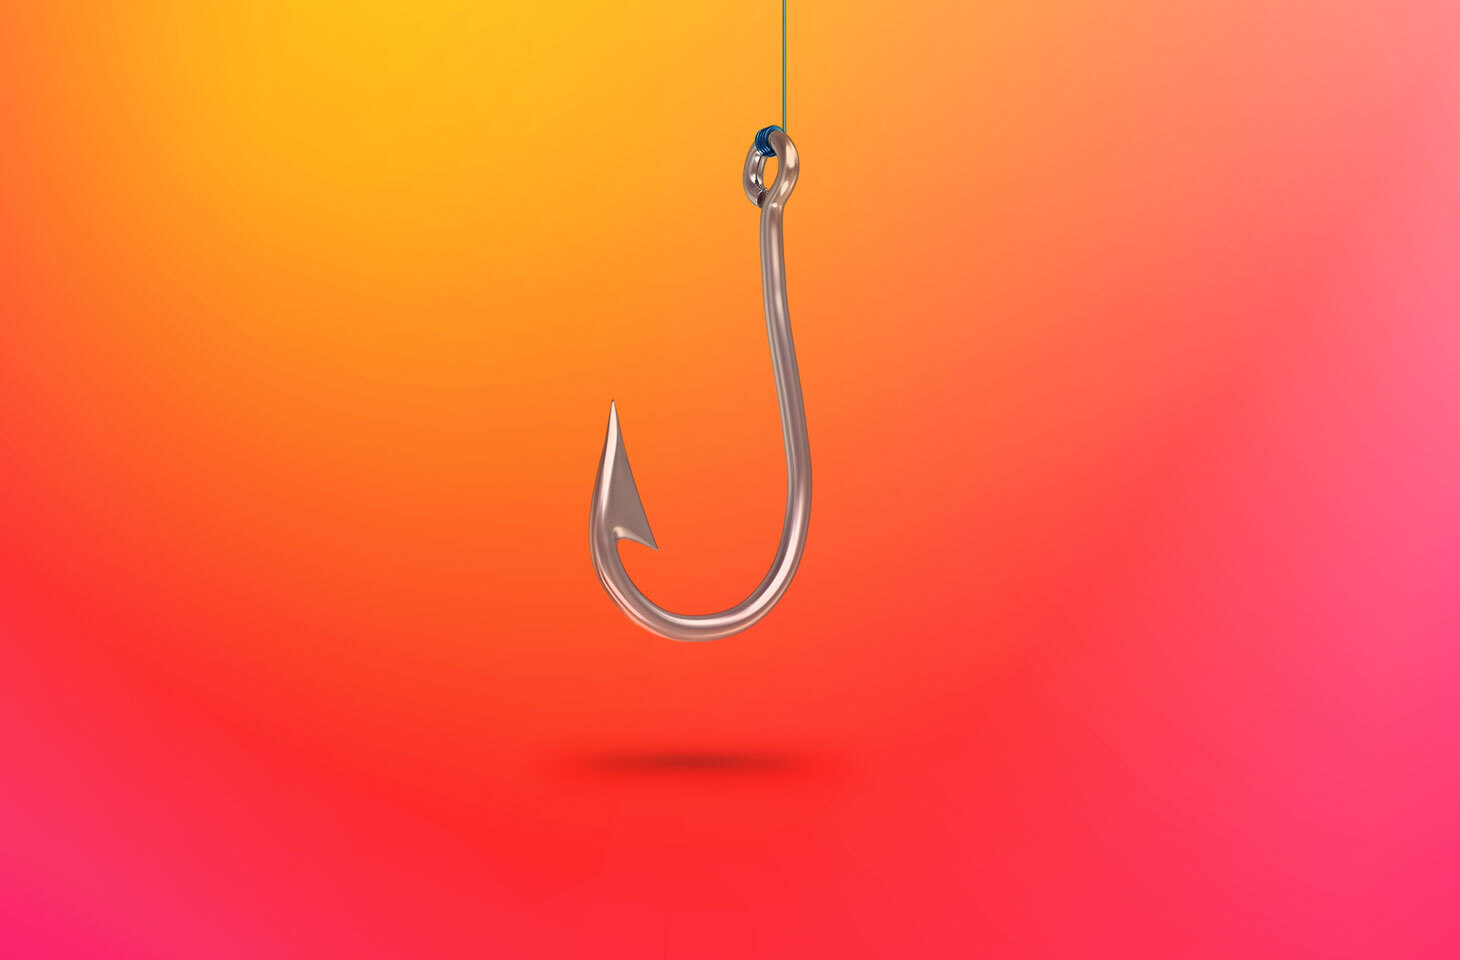 Phishing through e-mail marketing services